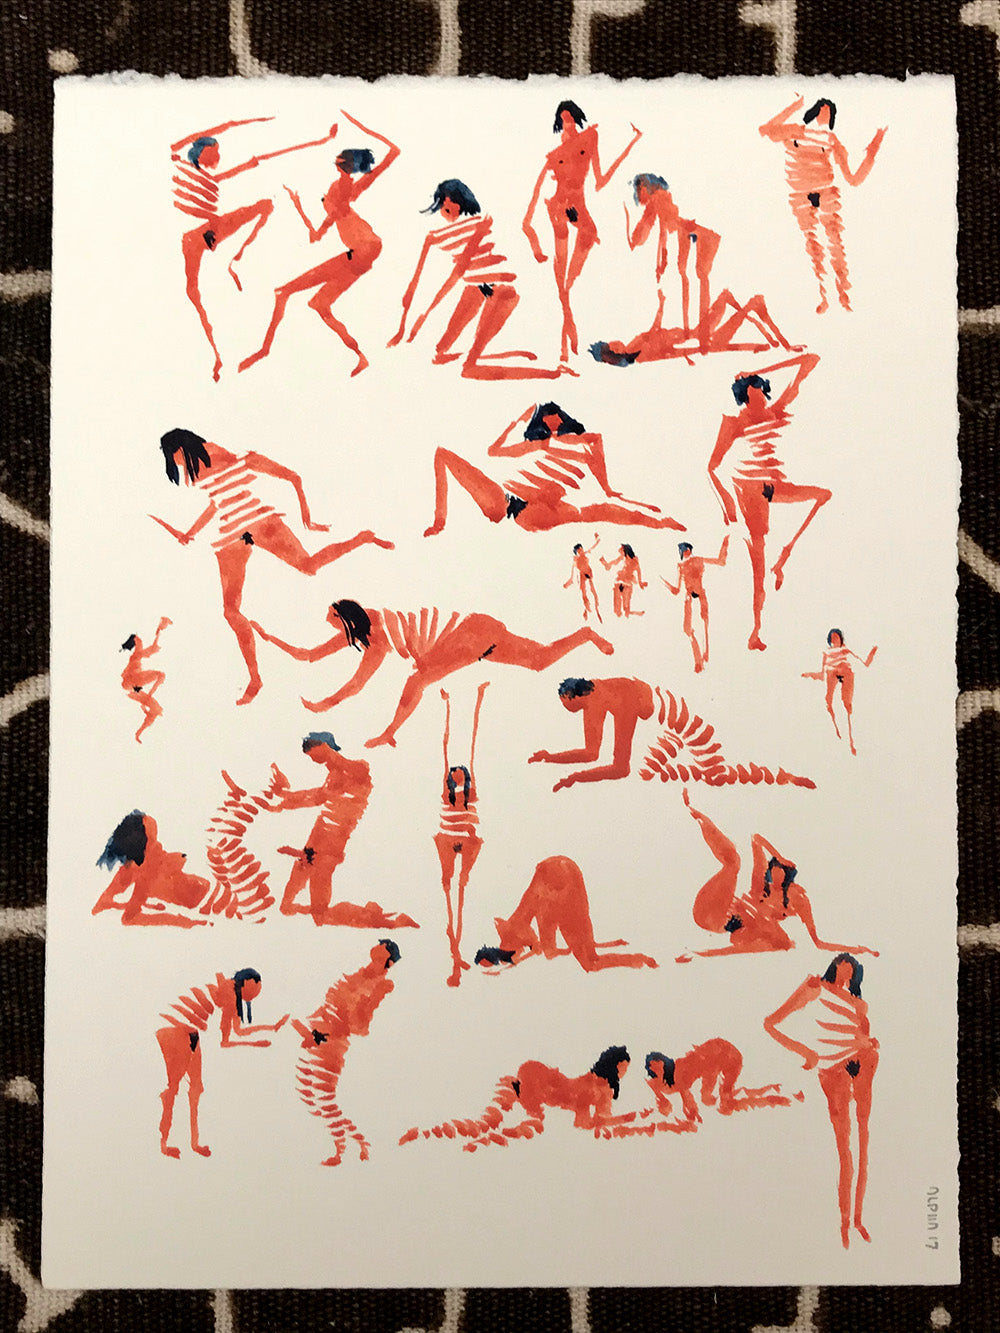 Original Art- Figures with Red Stripes